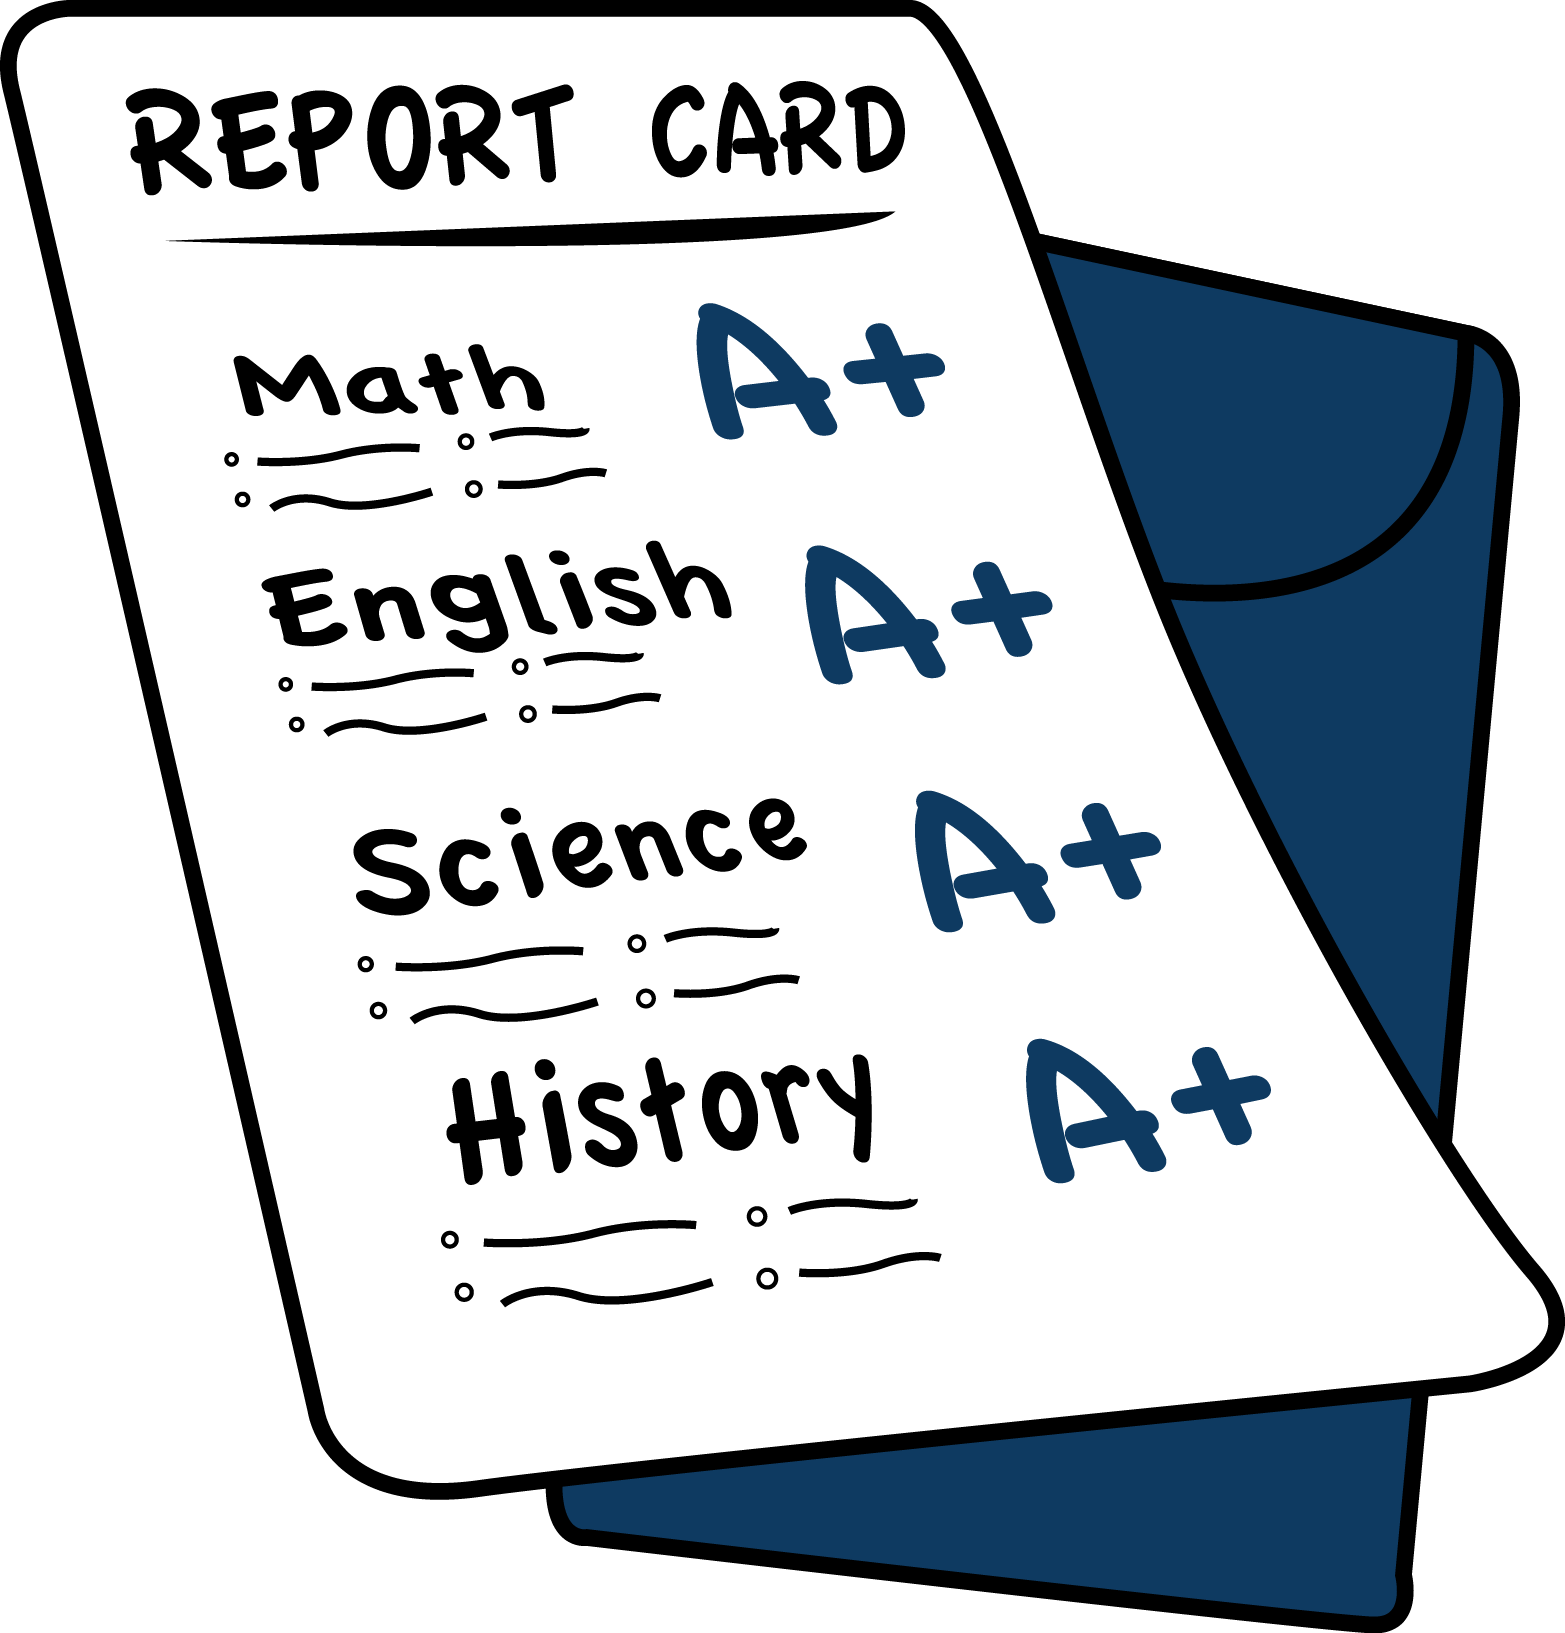 report cards reynolds school district oregon school supplies clip art black and white school supplies clipart free images